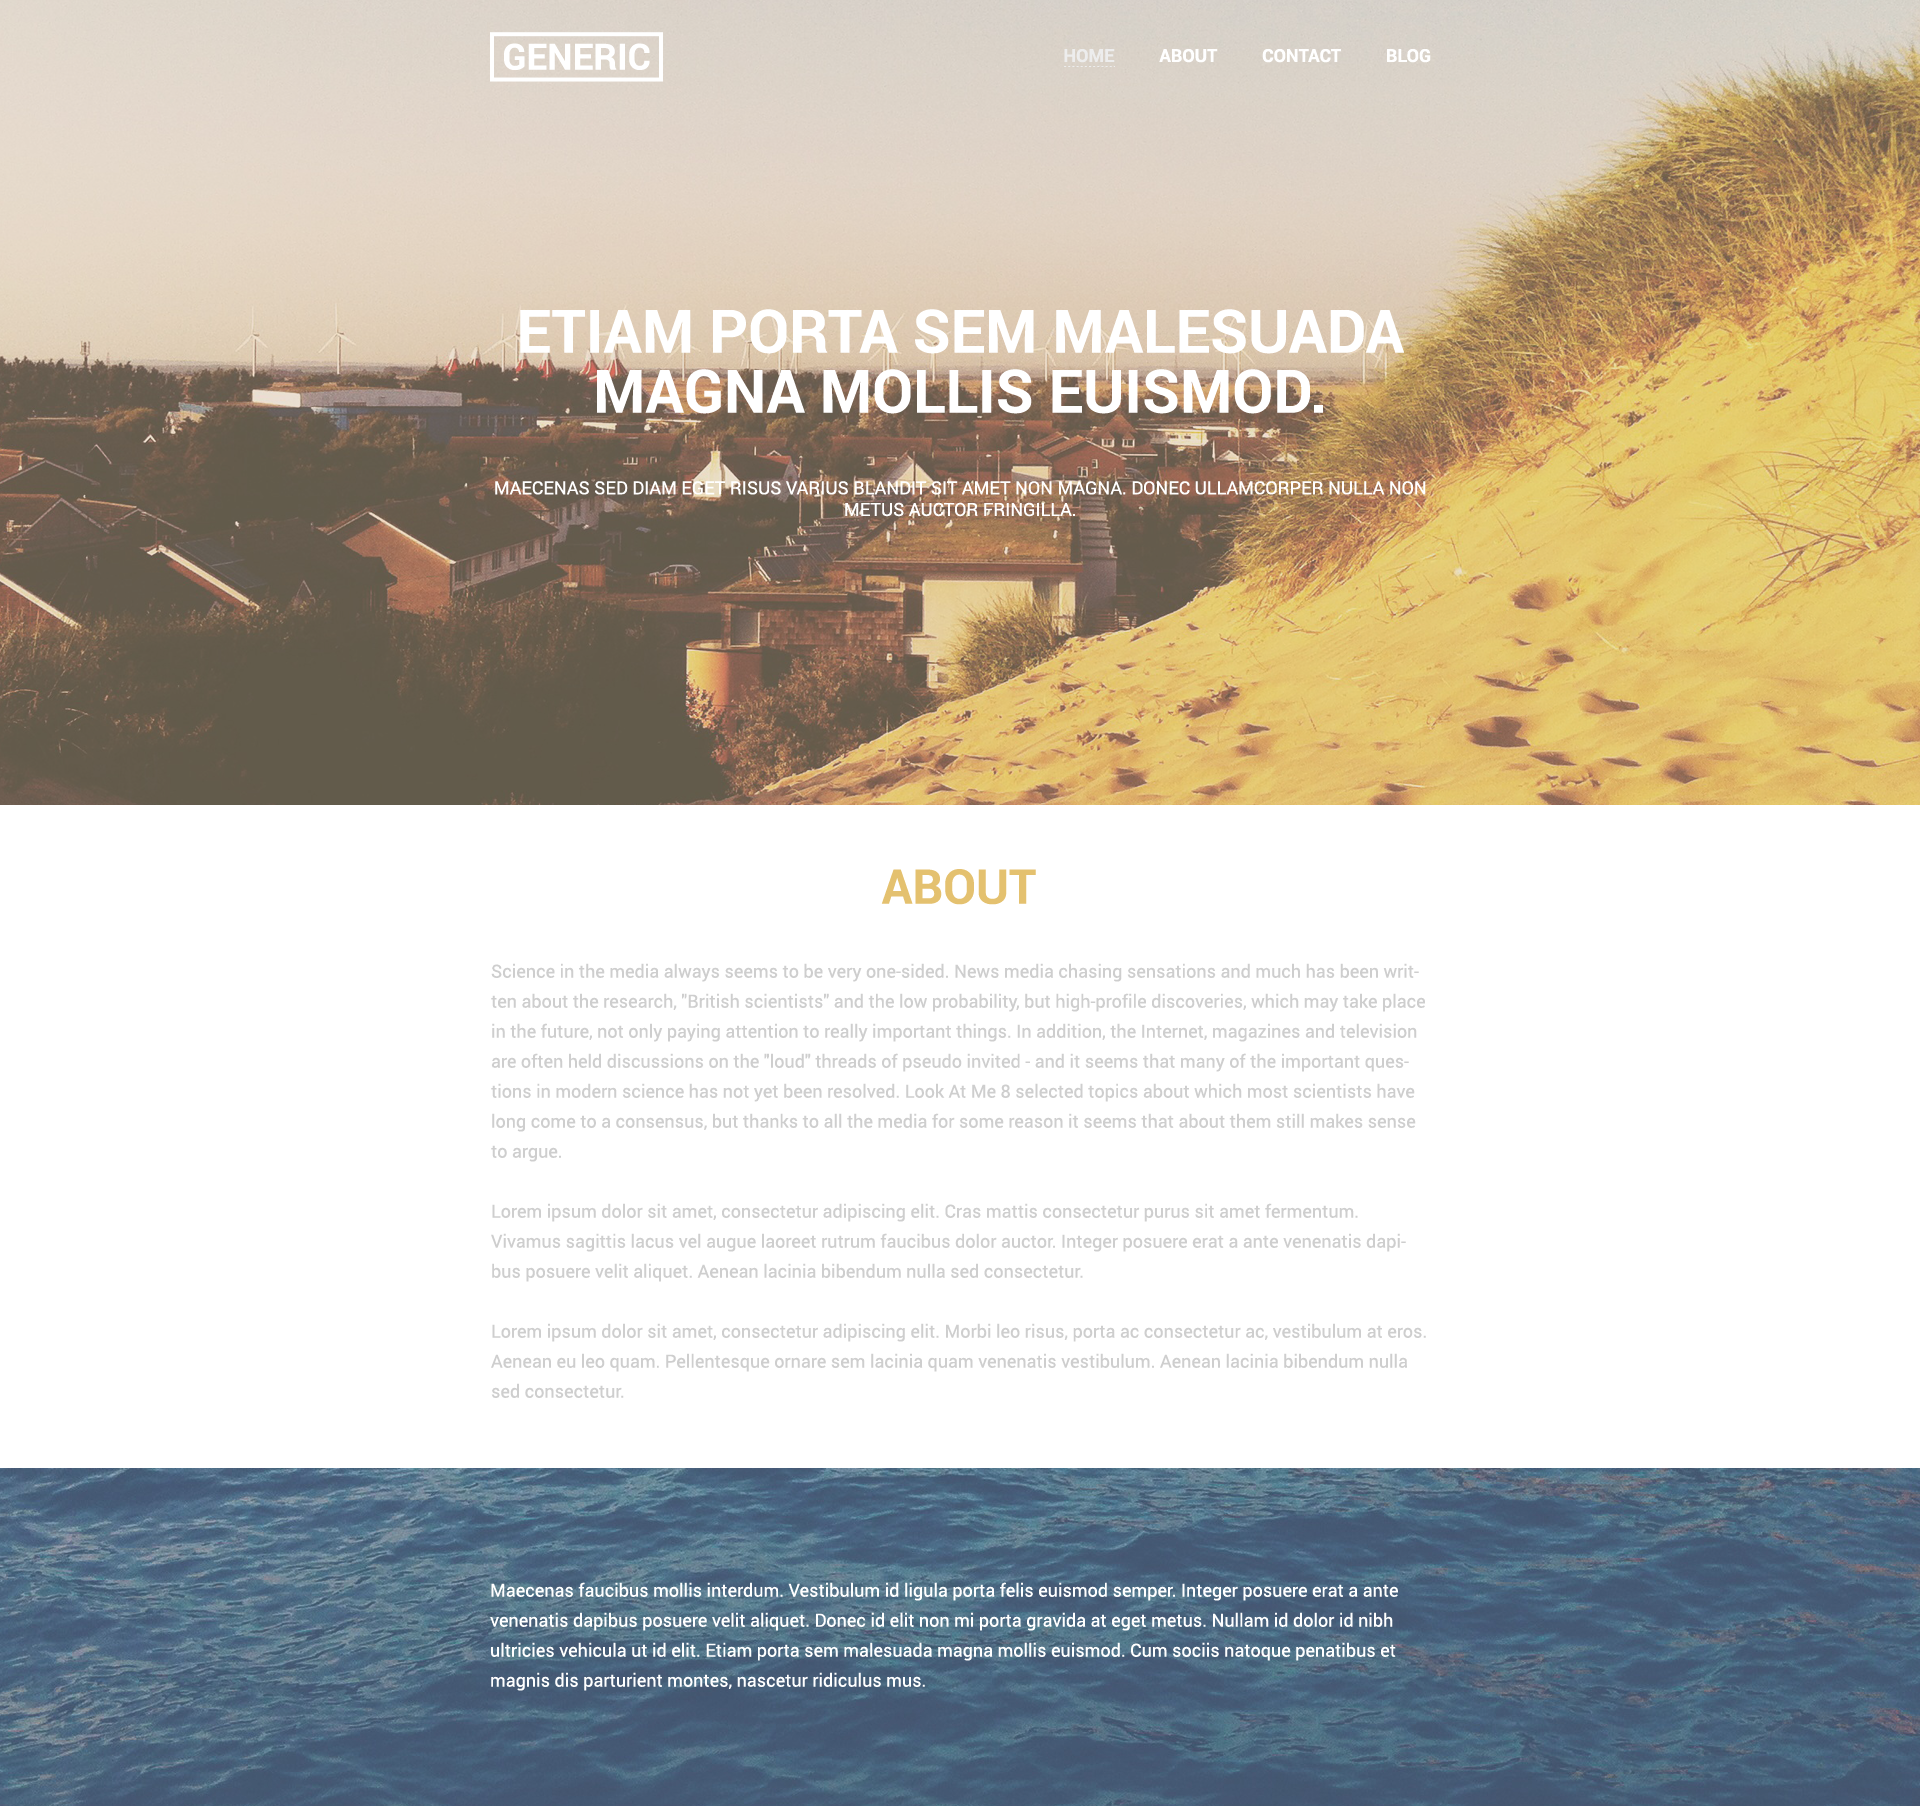 Generic website template preview